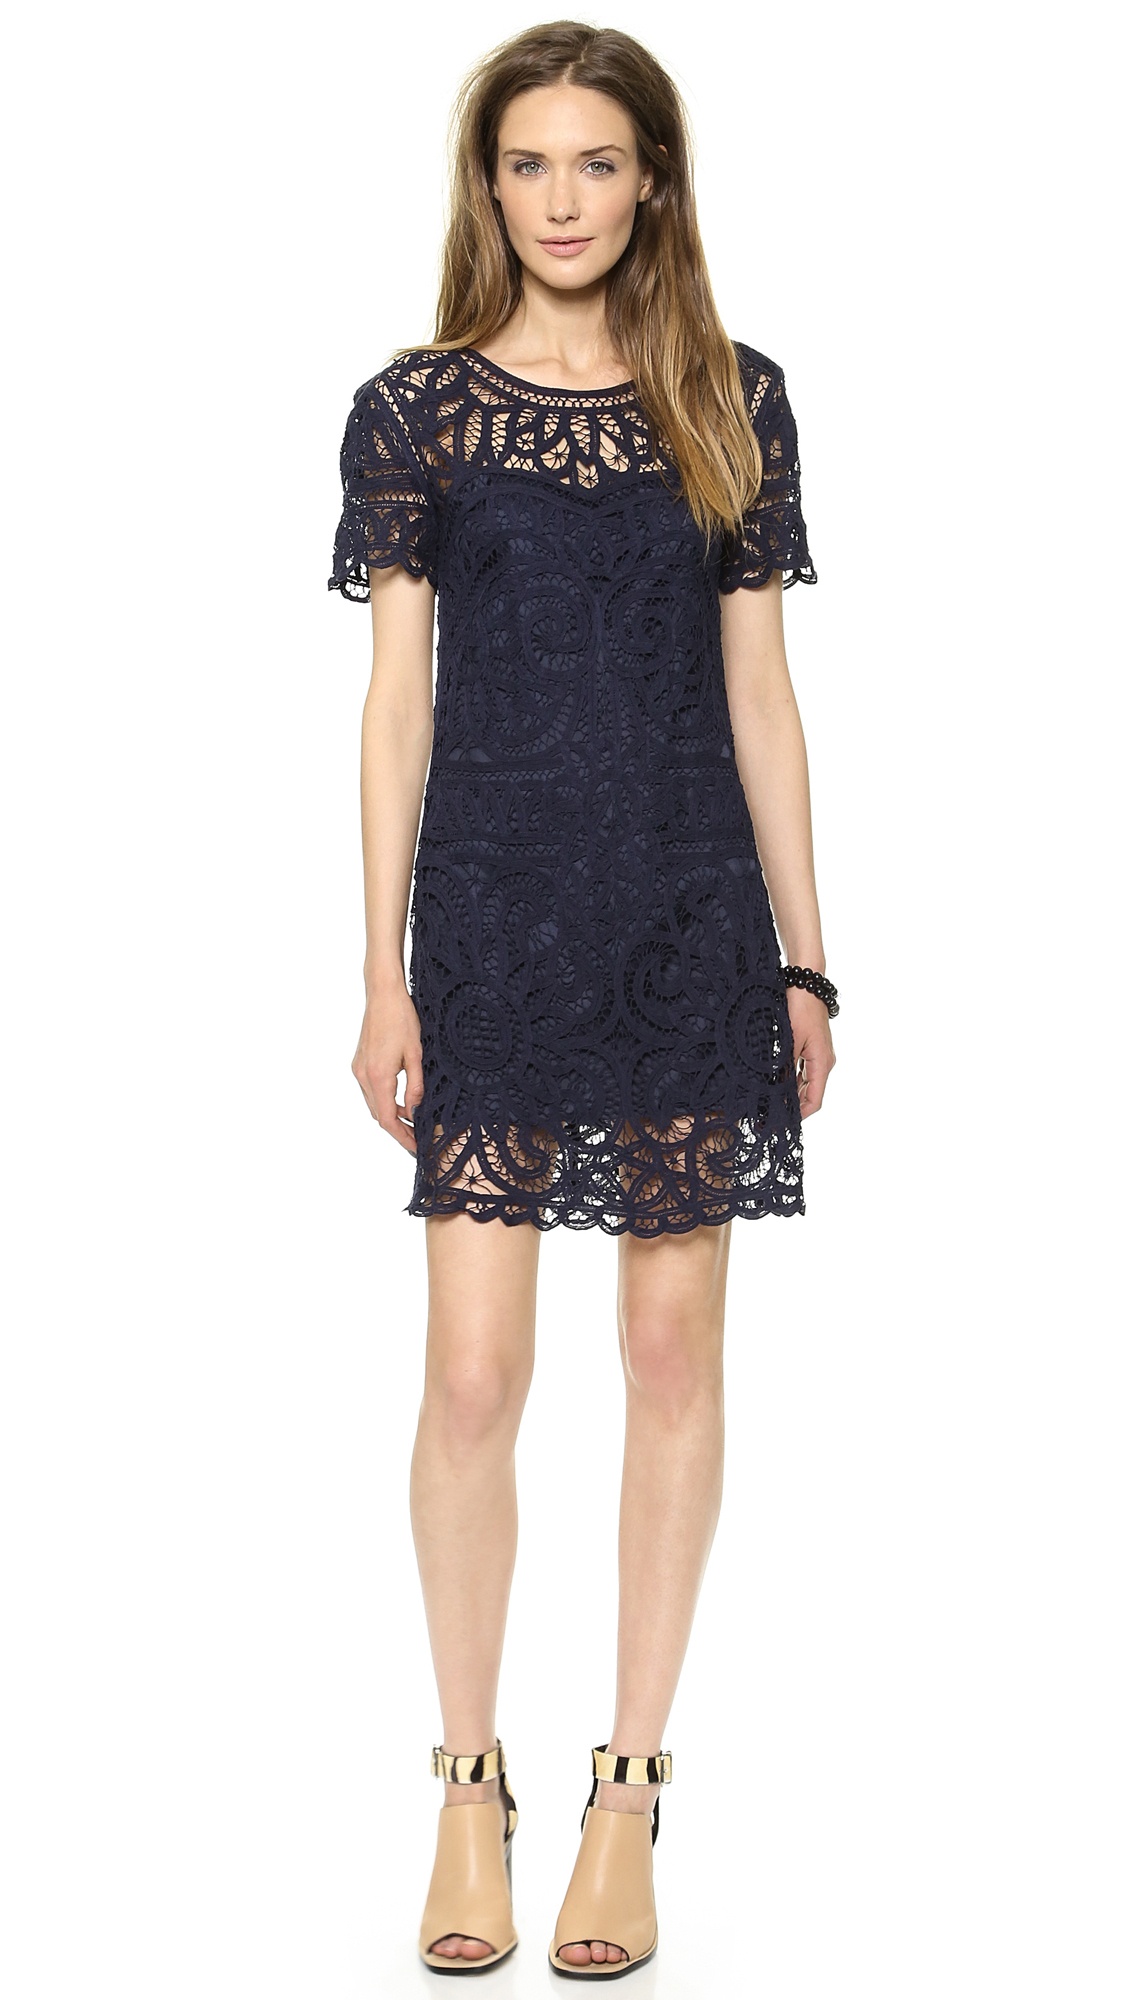 Short Sleeve Lace Dress Navy